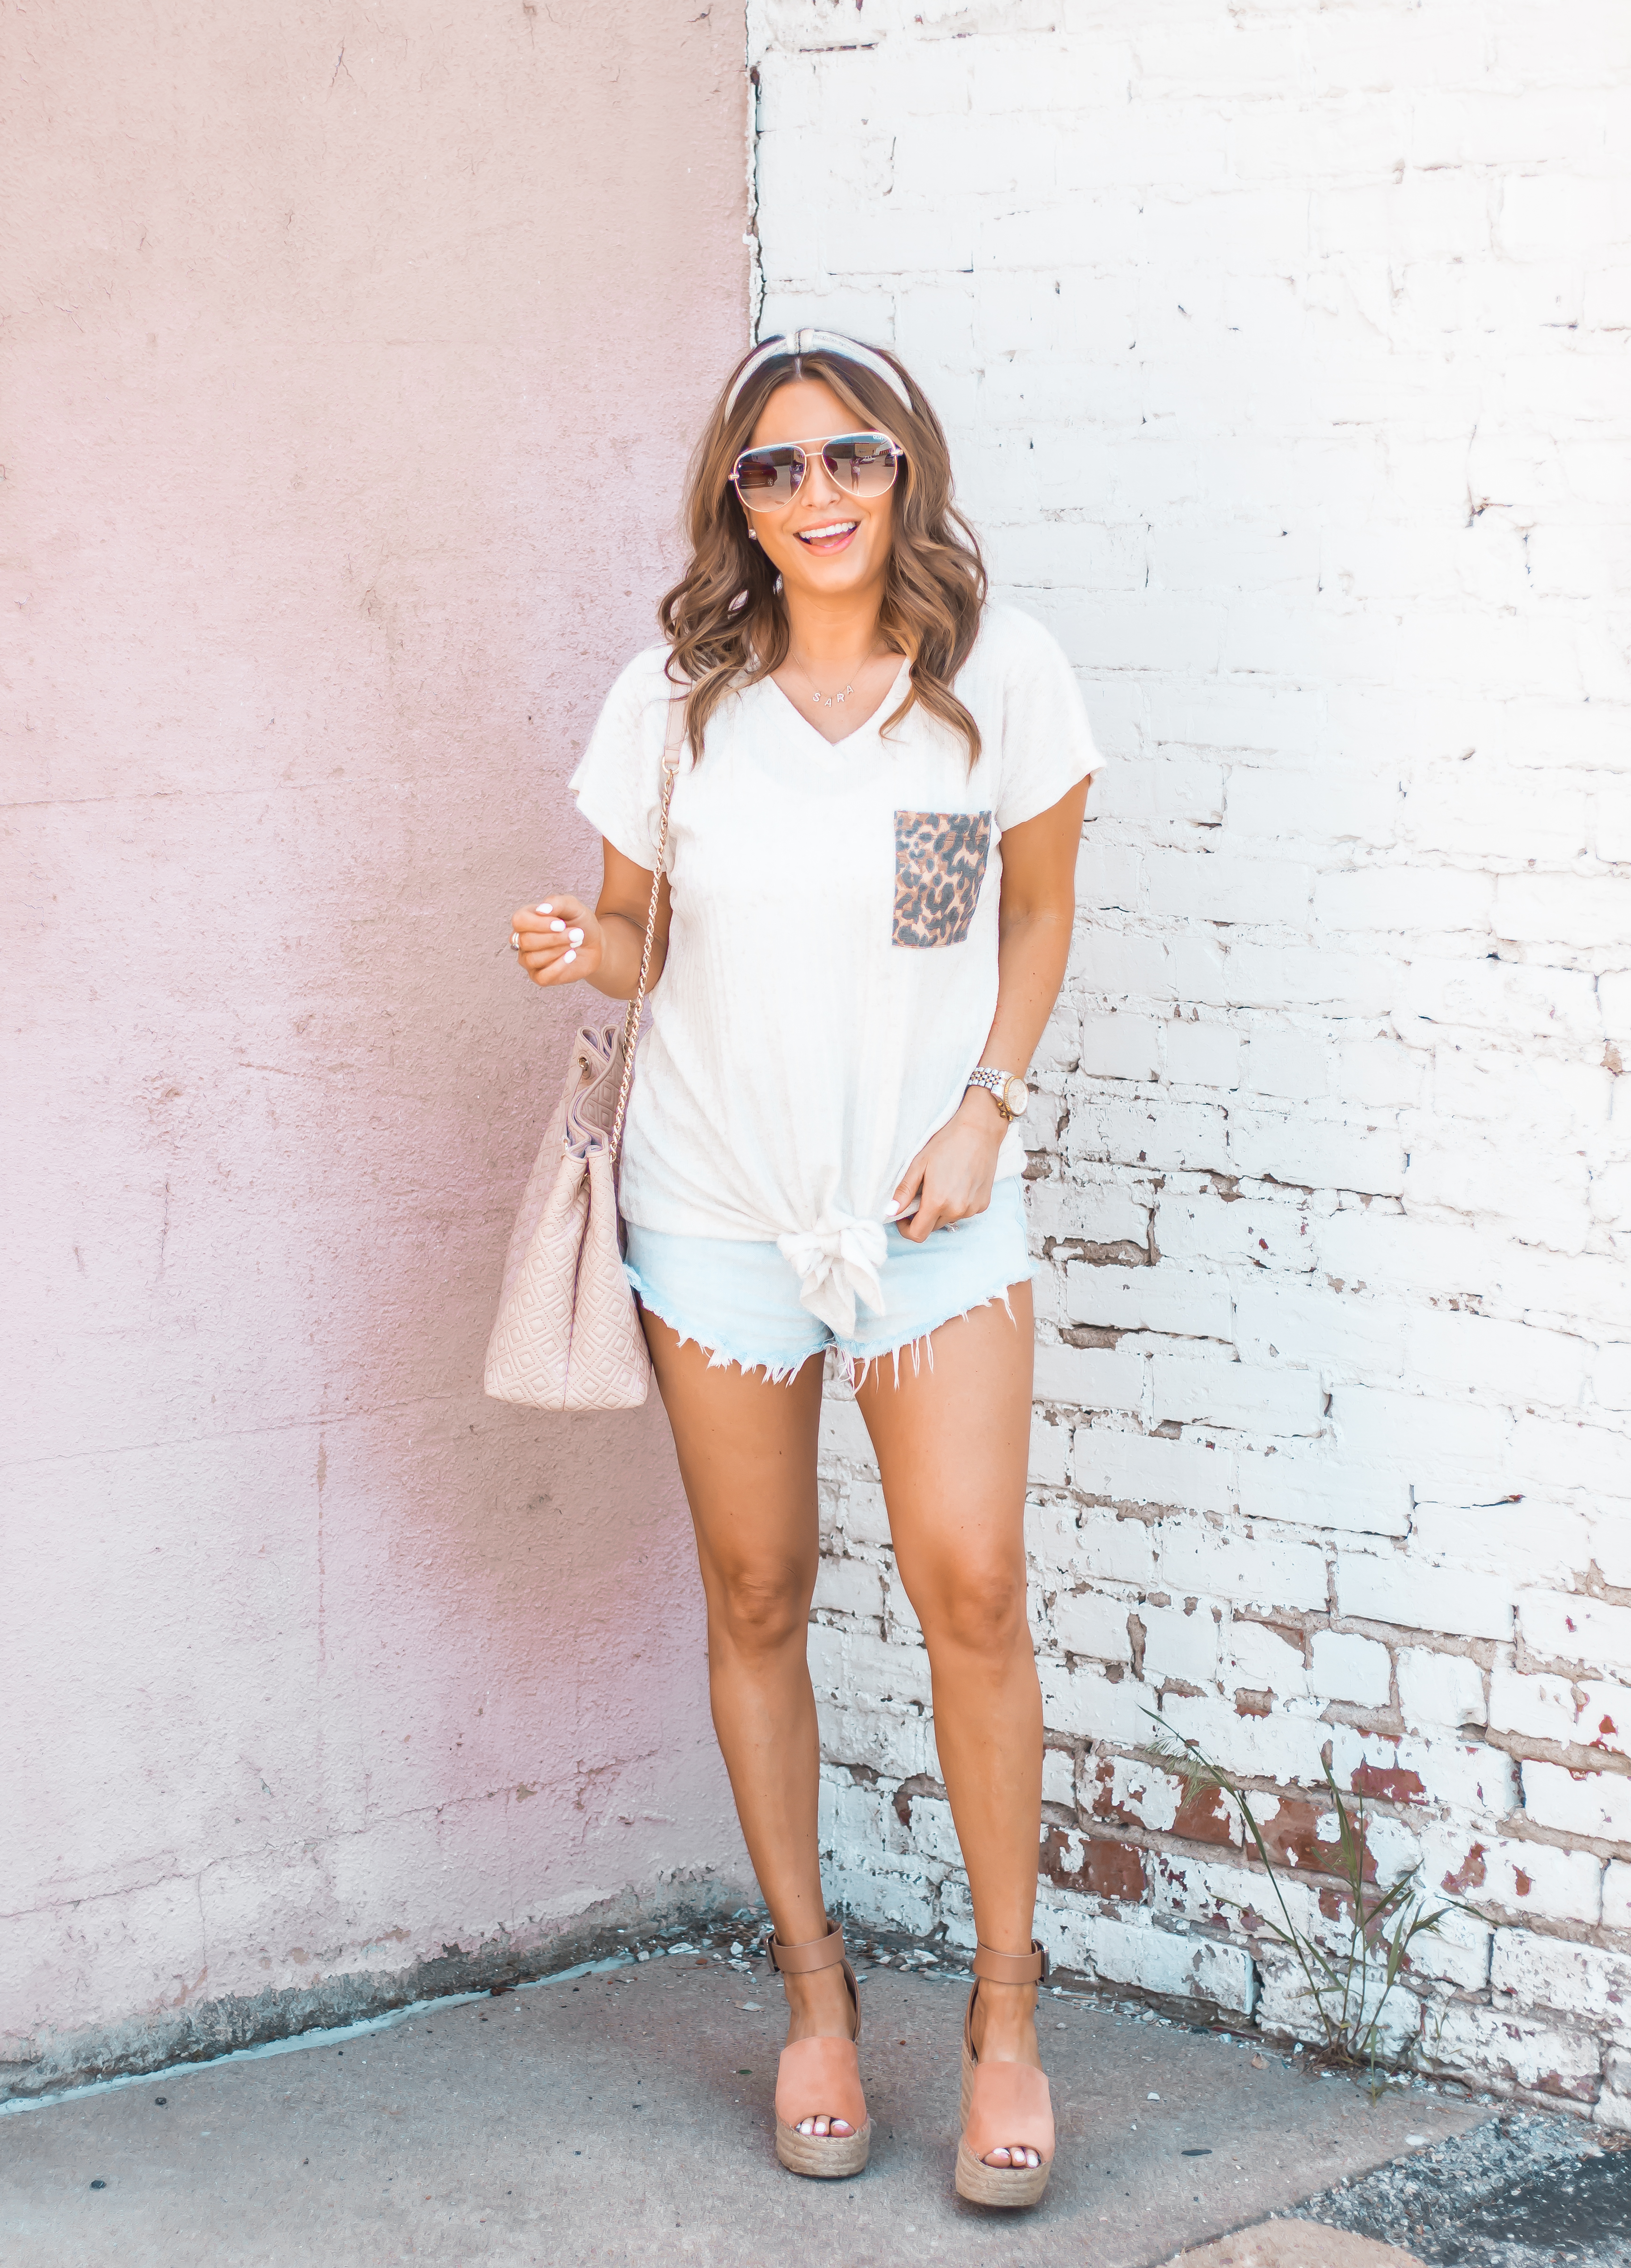 Women's Fashion-Summer Fashion-Summer Outfit Inspiration-Sabby Style-Omaha Blogger-Leopard Pocket Top-The Style Bar Boutique-Cutoff Shorts-Espadrille Wedges-Marc Fisher Wedges-Tory Burch Fleming-Quay Sunglasses-Headband Trend-Omaha-Nebraska-Midwest Blogger-18